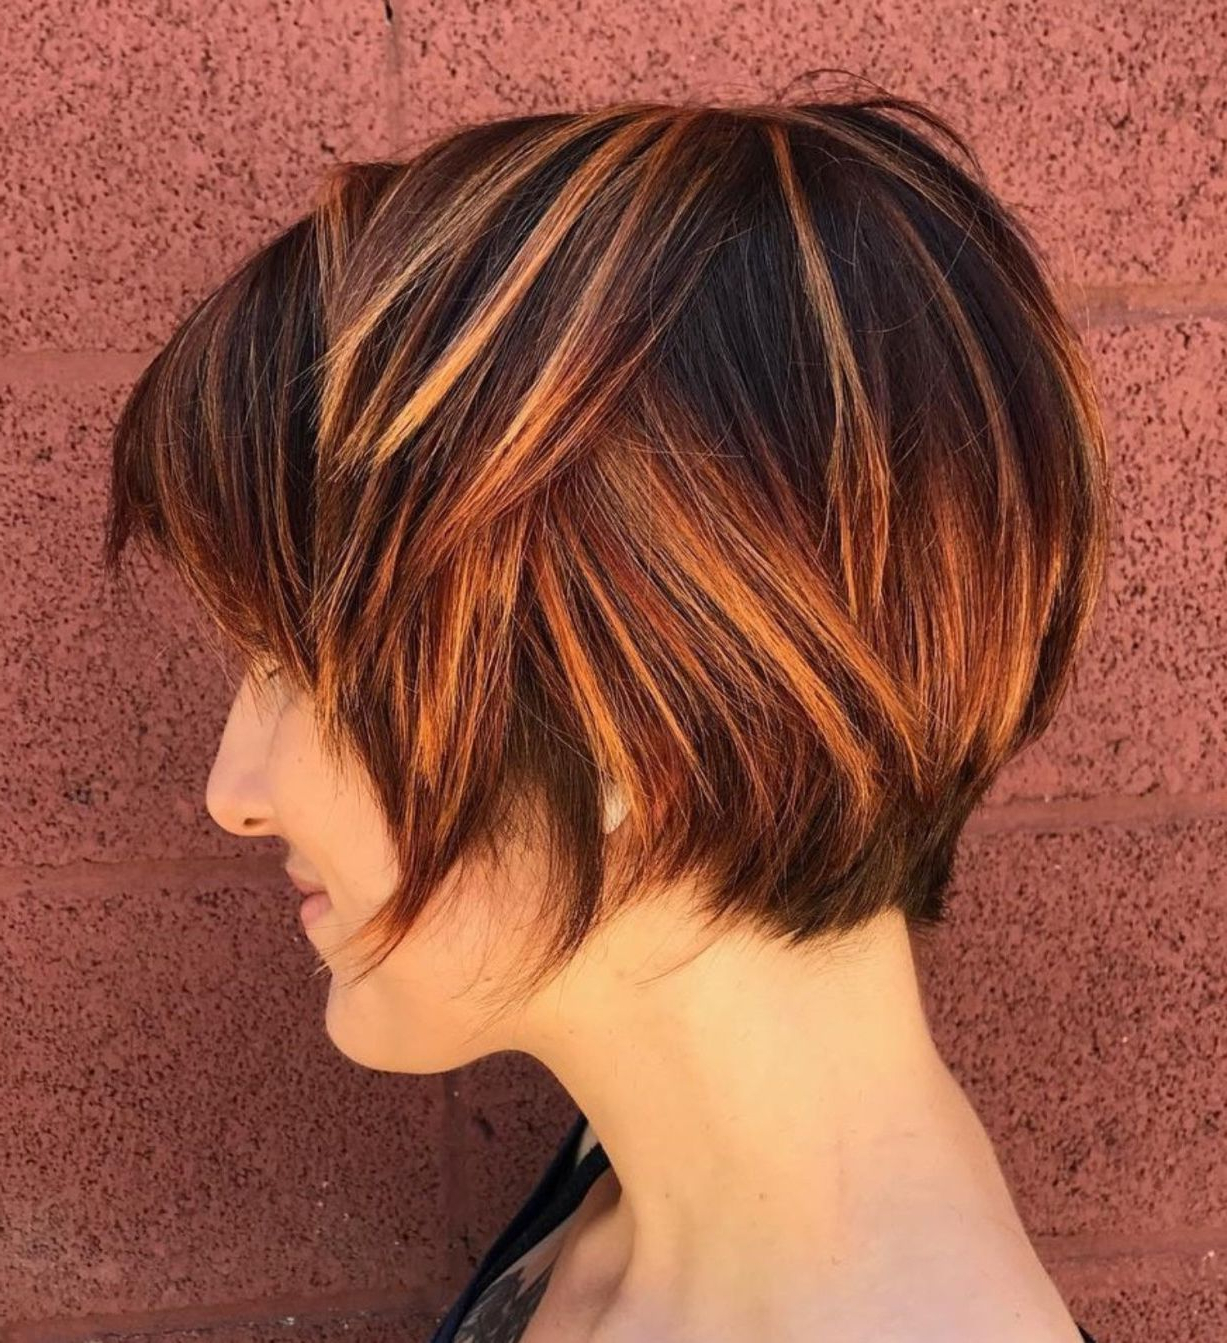 70 Cute And Easy To Style Short Layered Hairstyles In 2019 For Short Bob Hairstyles With Highlights (View 8 of 20)